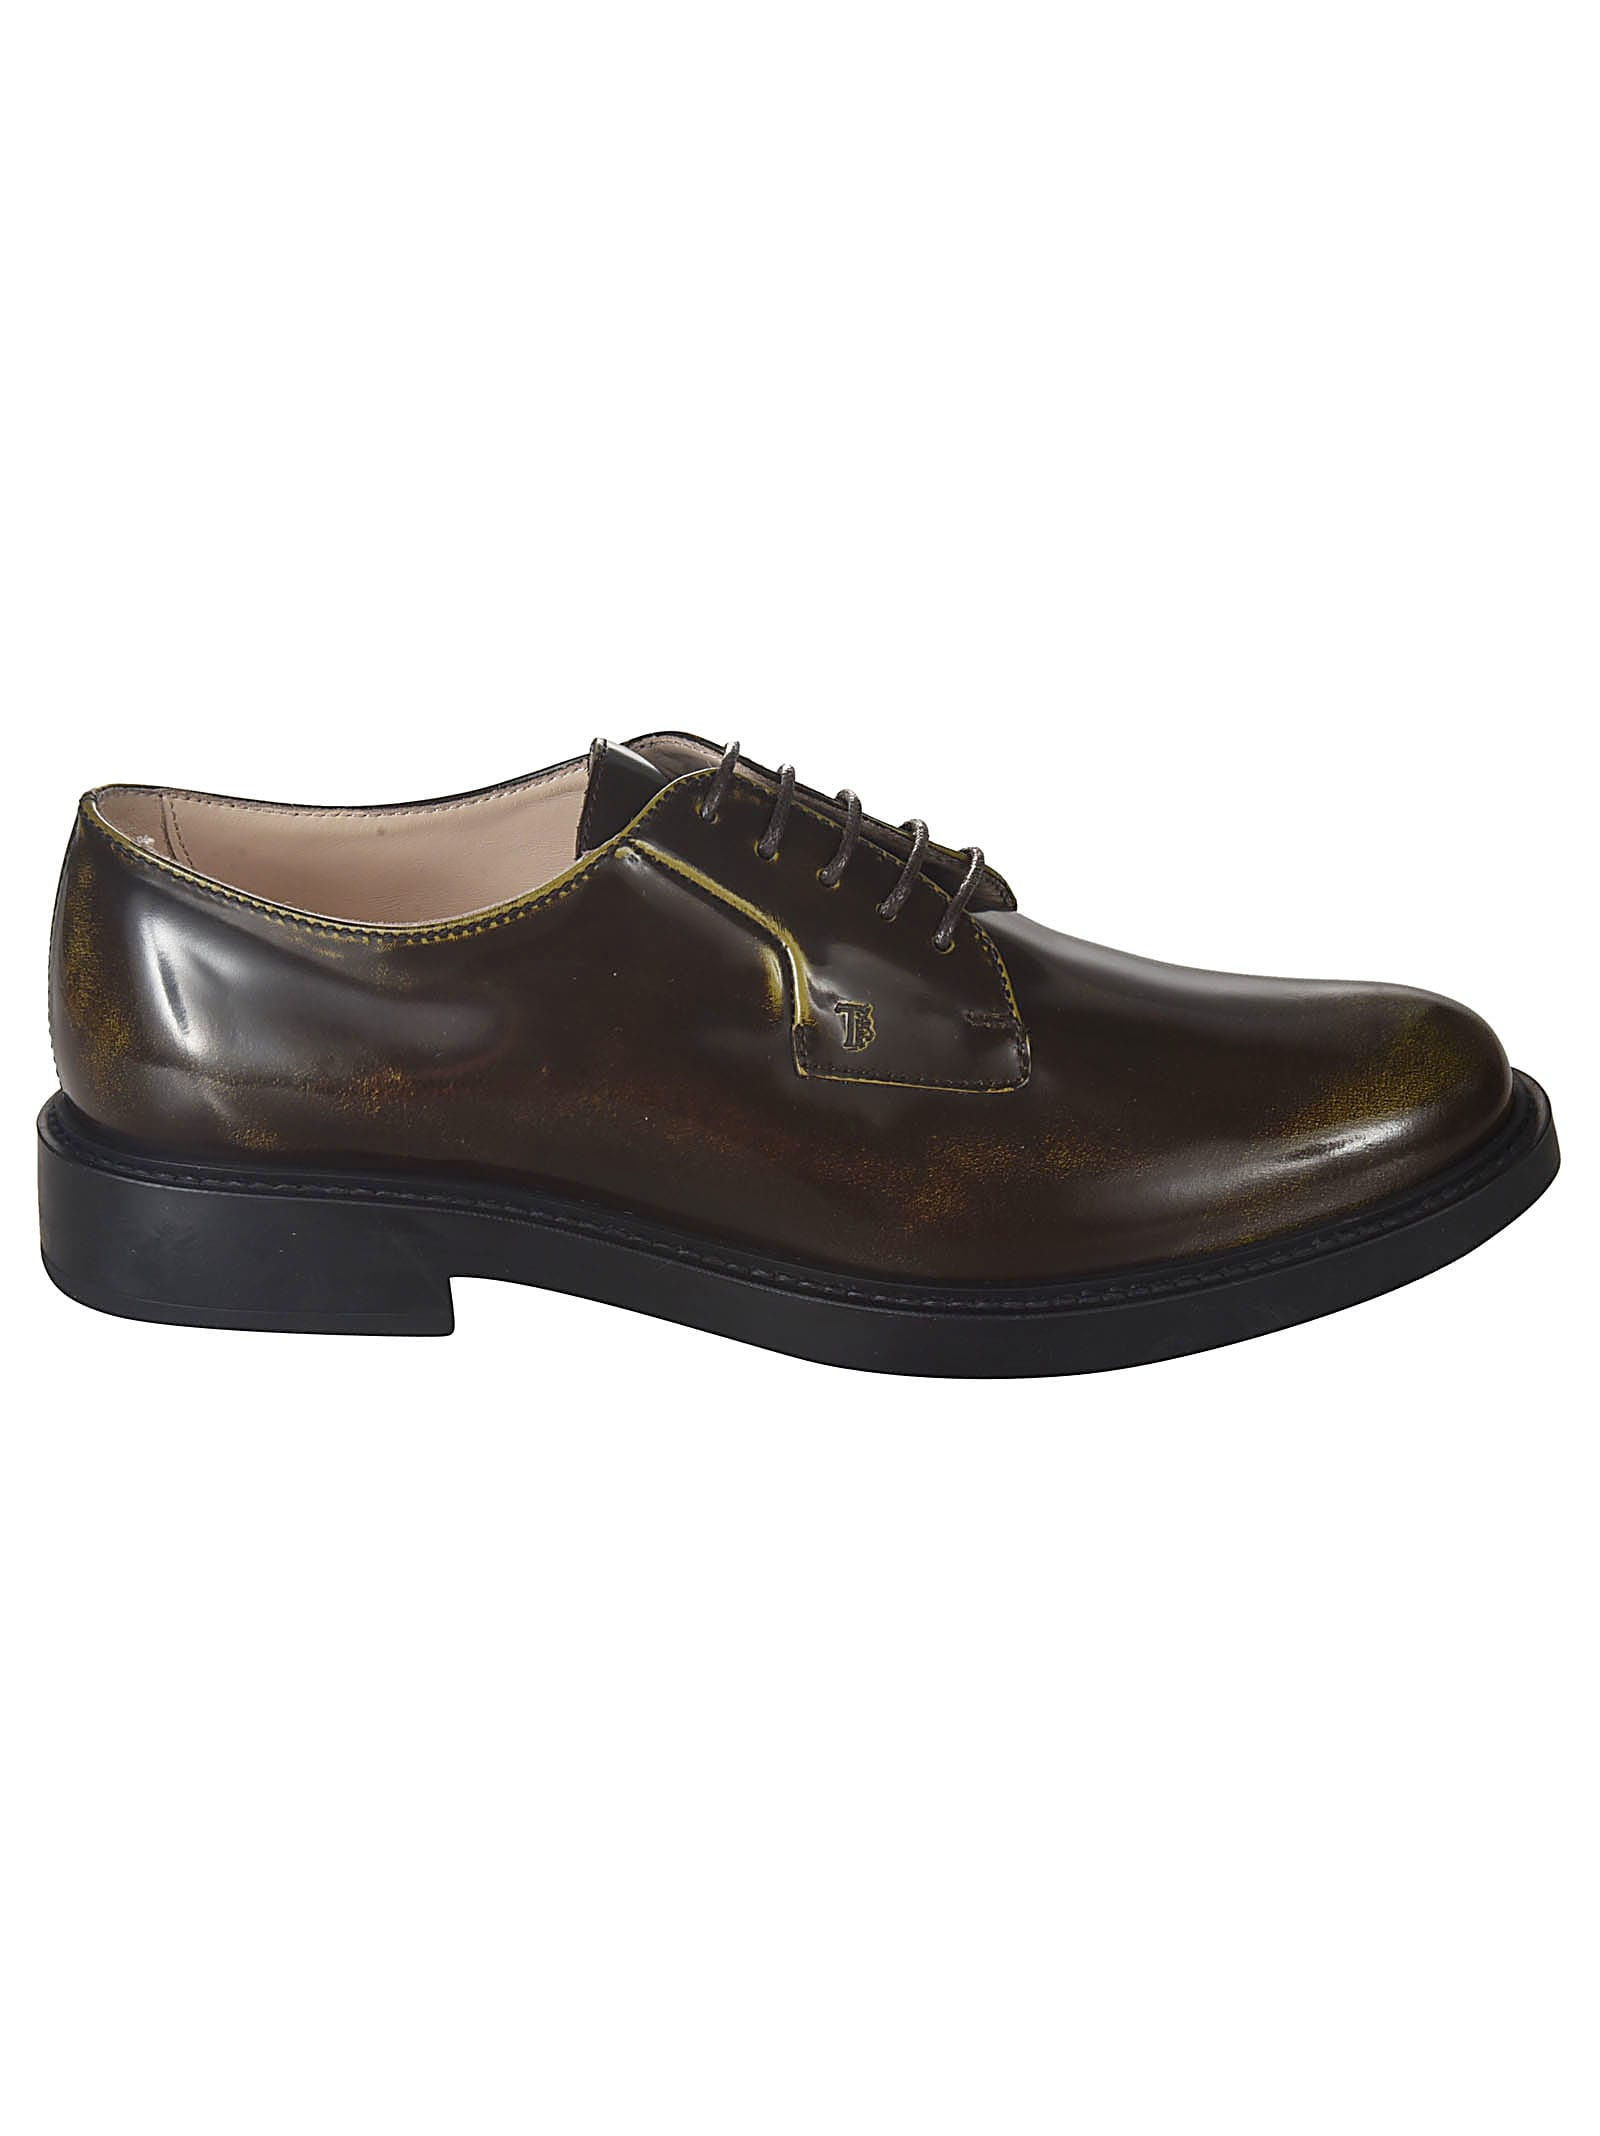 Tods Classic Oxford Shoes